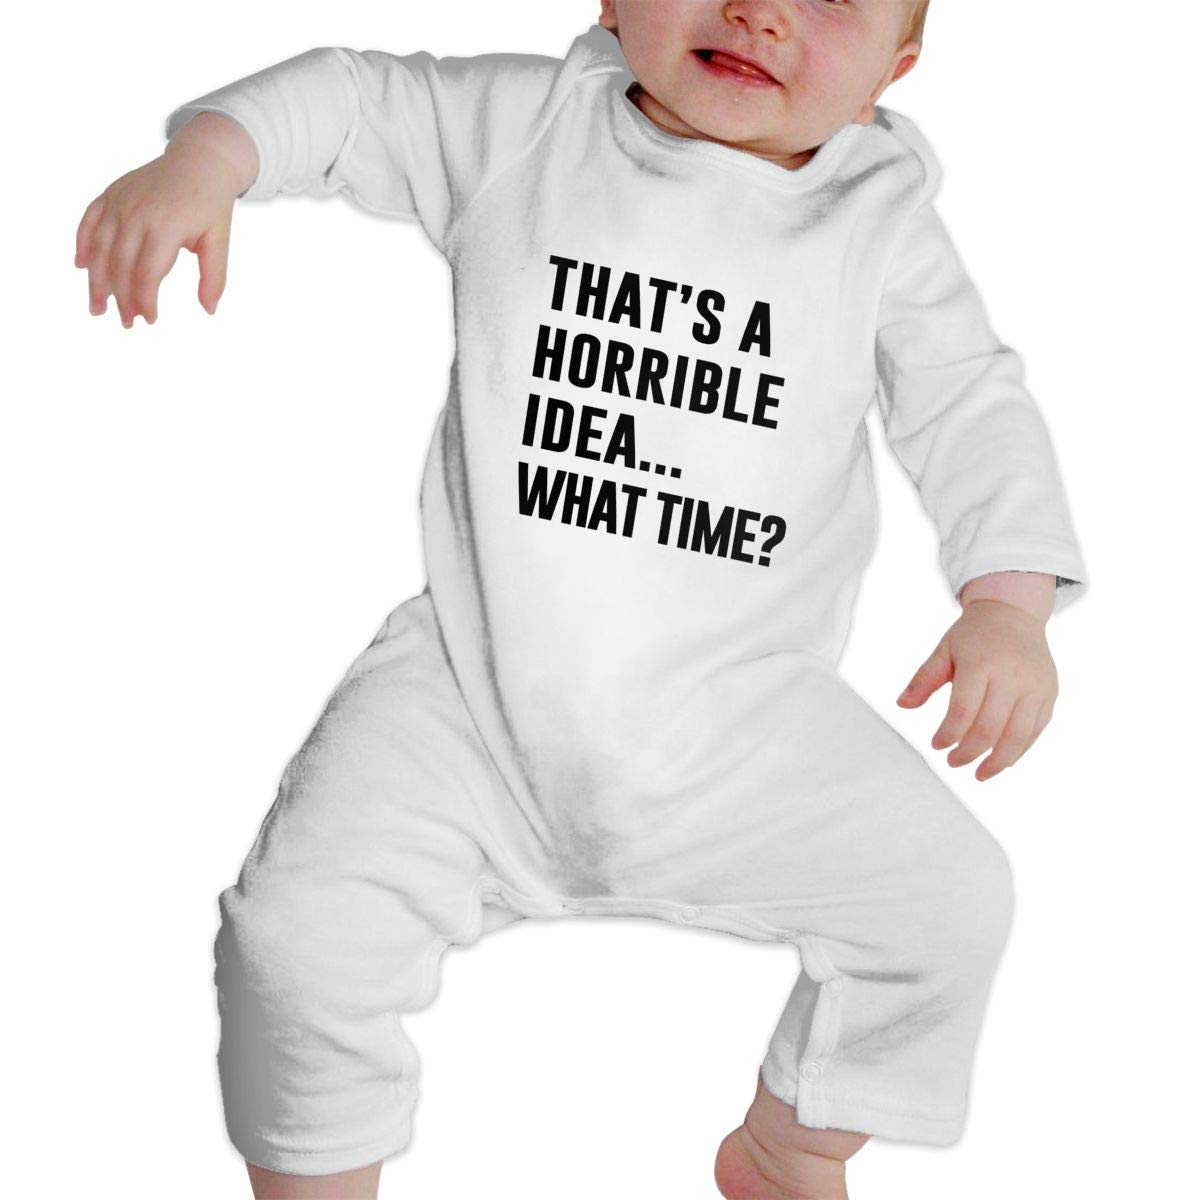 Thats A Terrible Idea What Time Romper Jumpsuit Long Sleeve Bodysuit Overalls Outfits Clothes for Newborn Baby Boy Girl